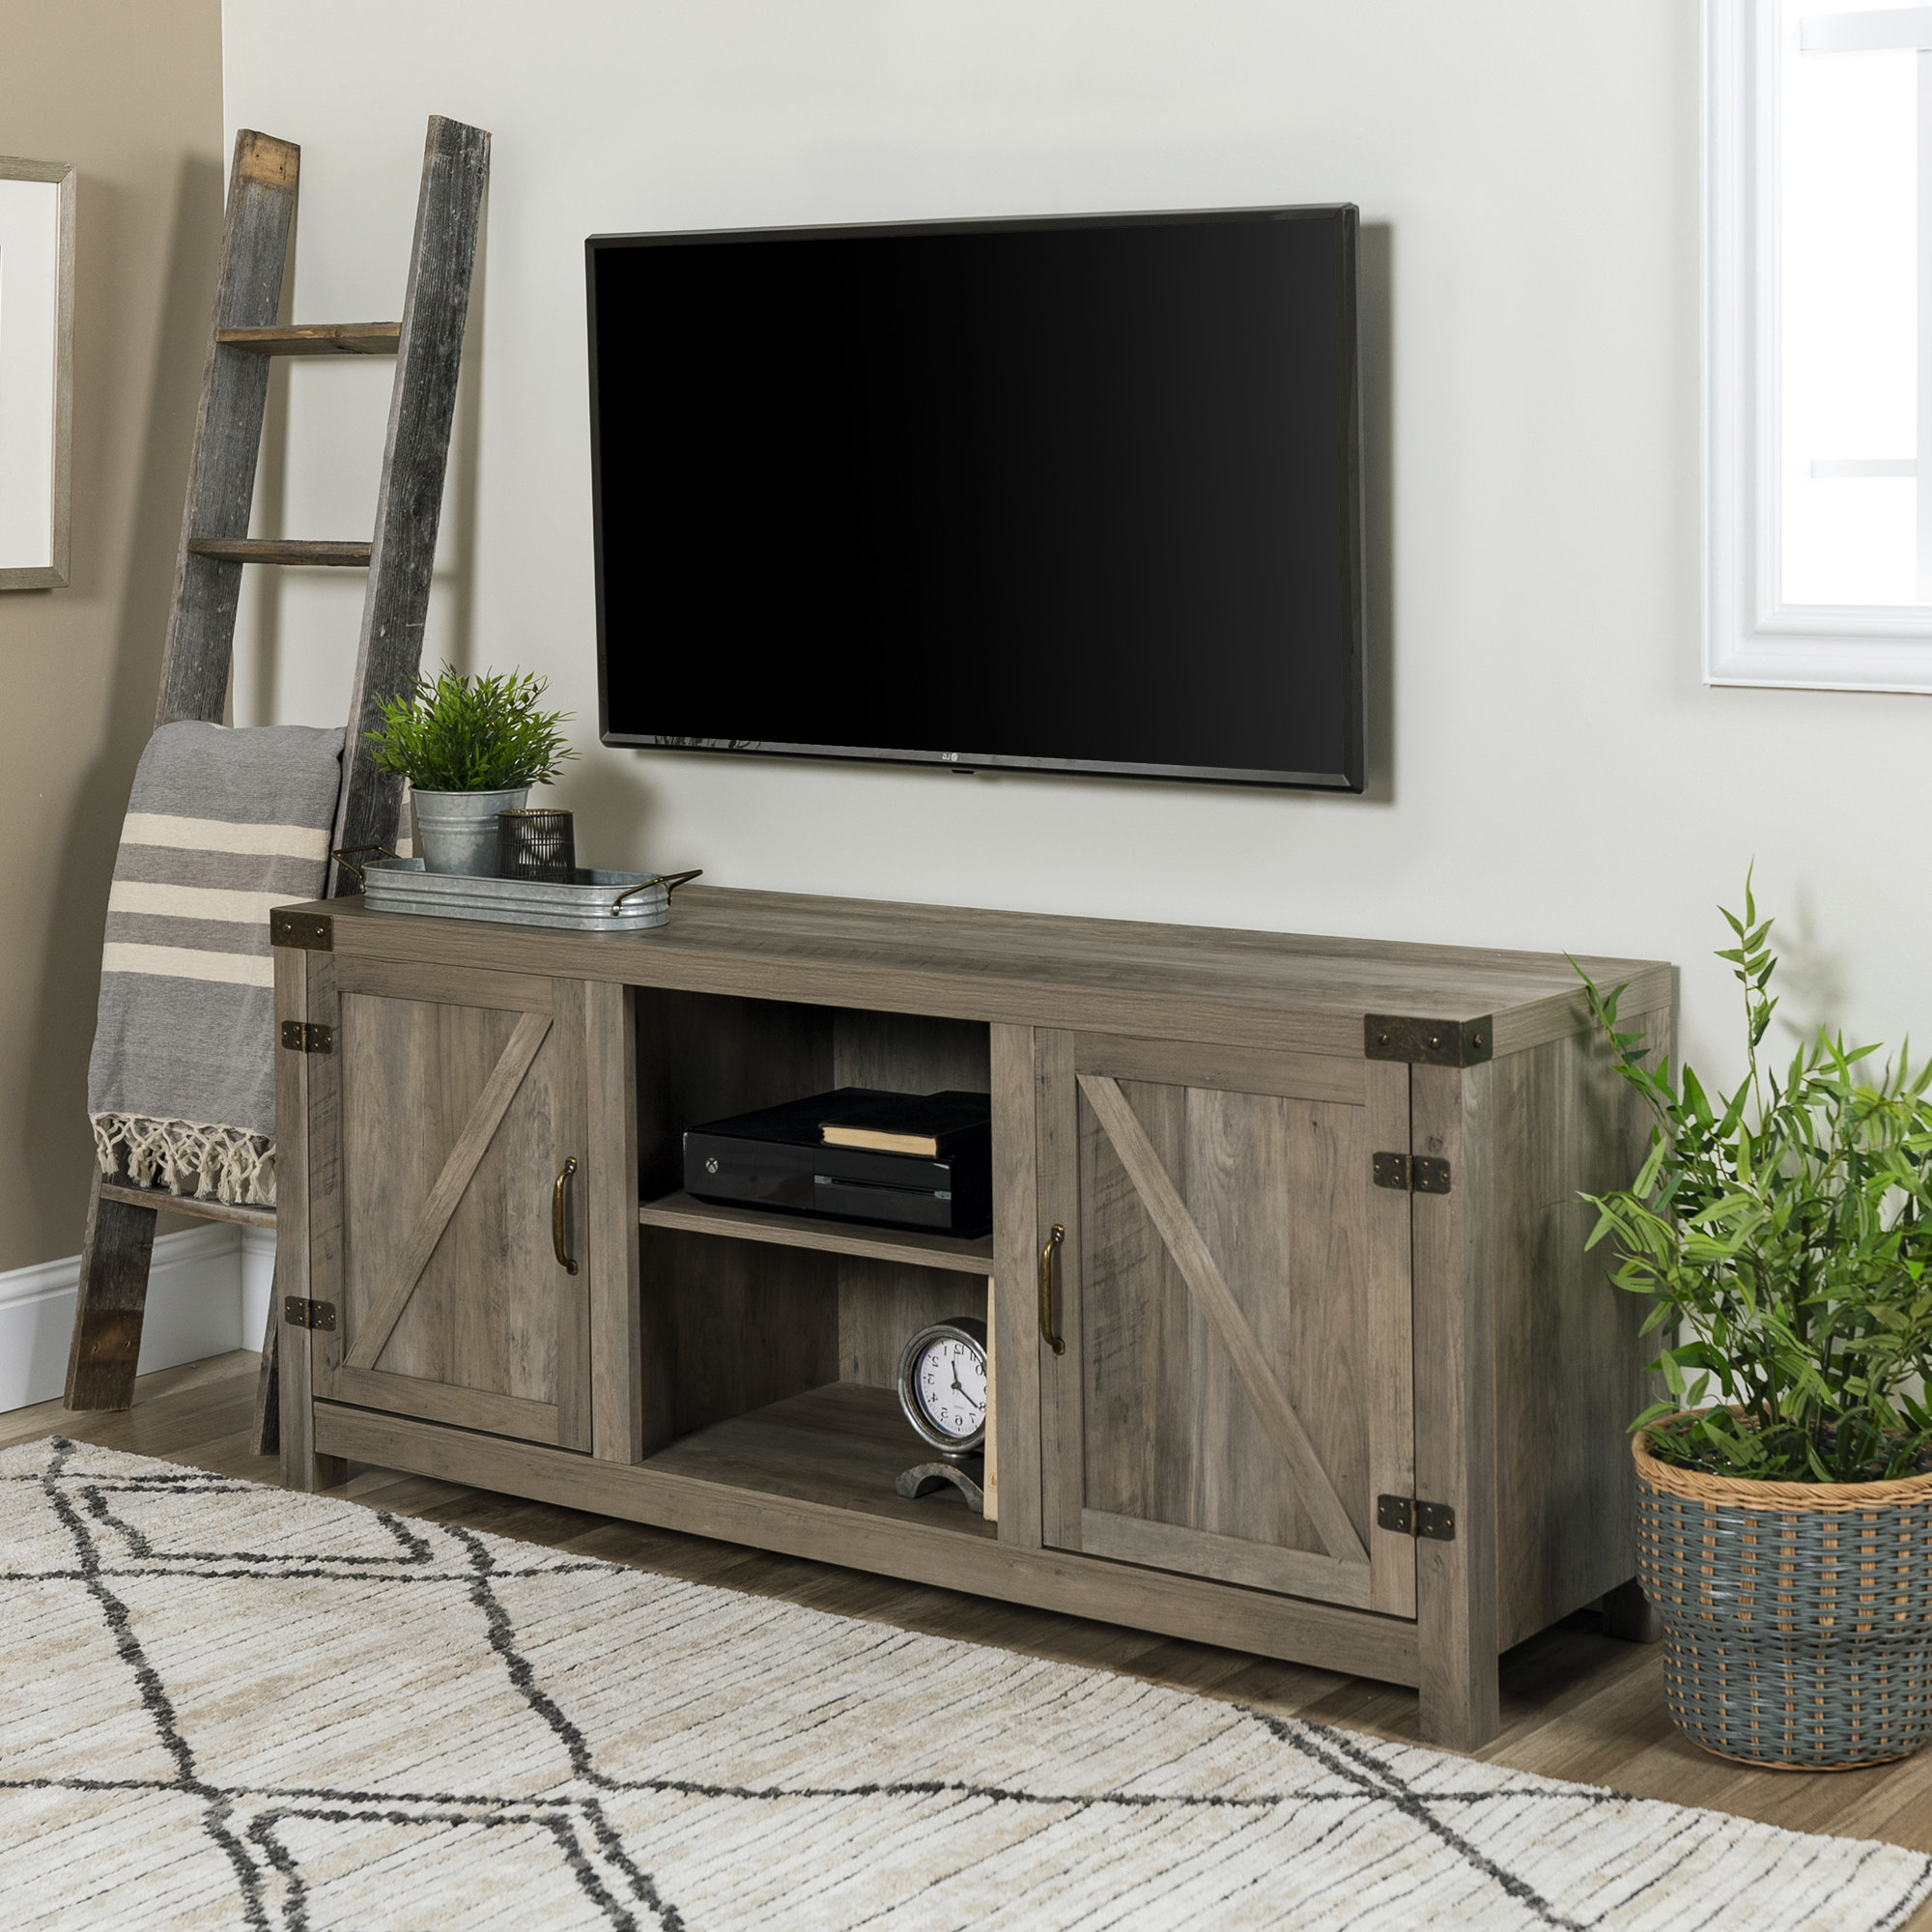 72 Inch Tv Stand | Wayfair Intended For Kenzie 72 Inch Open Display Tv Stands (View 4 of 20)